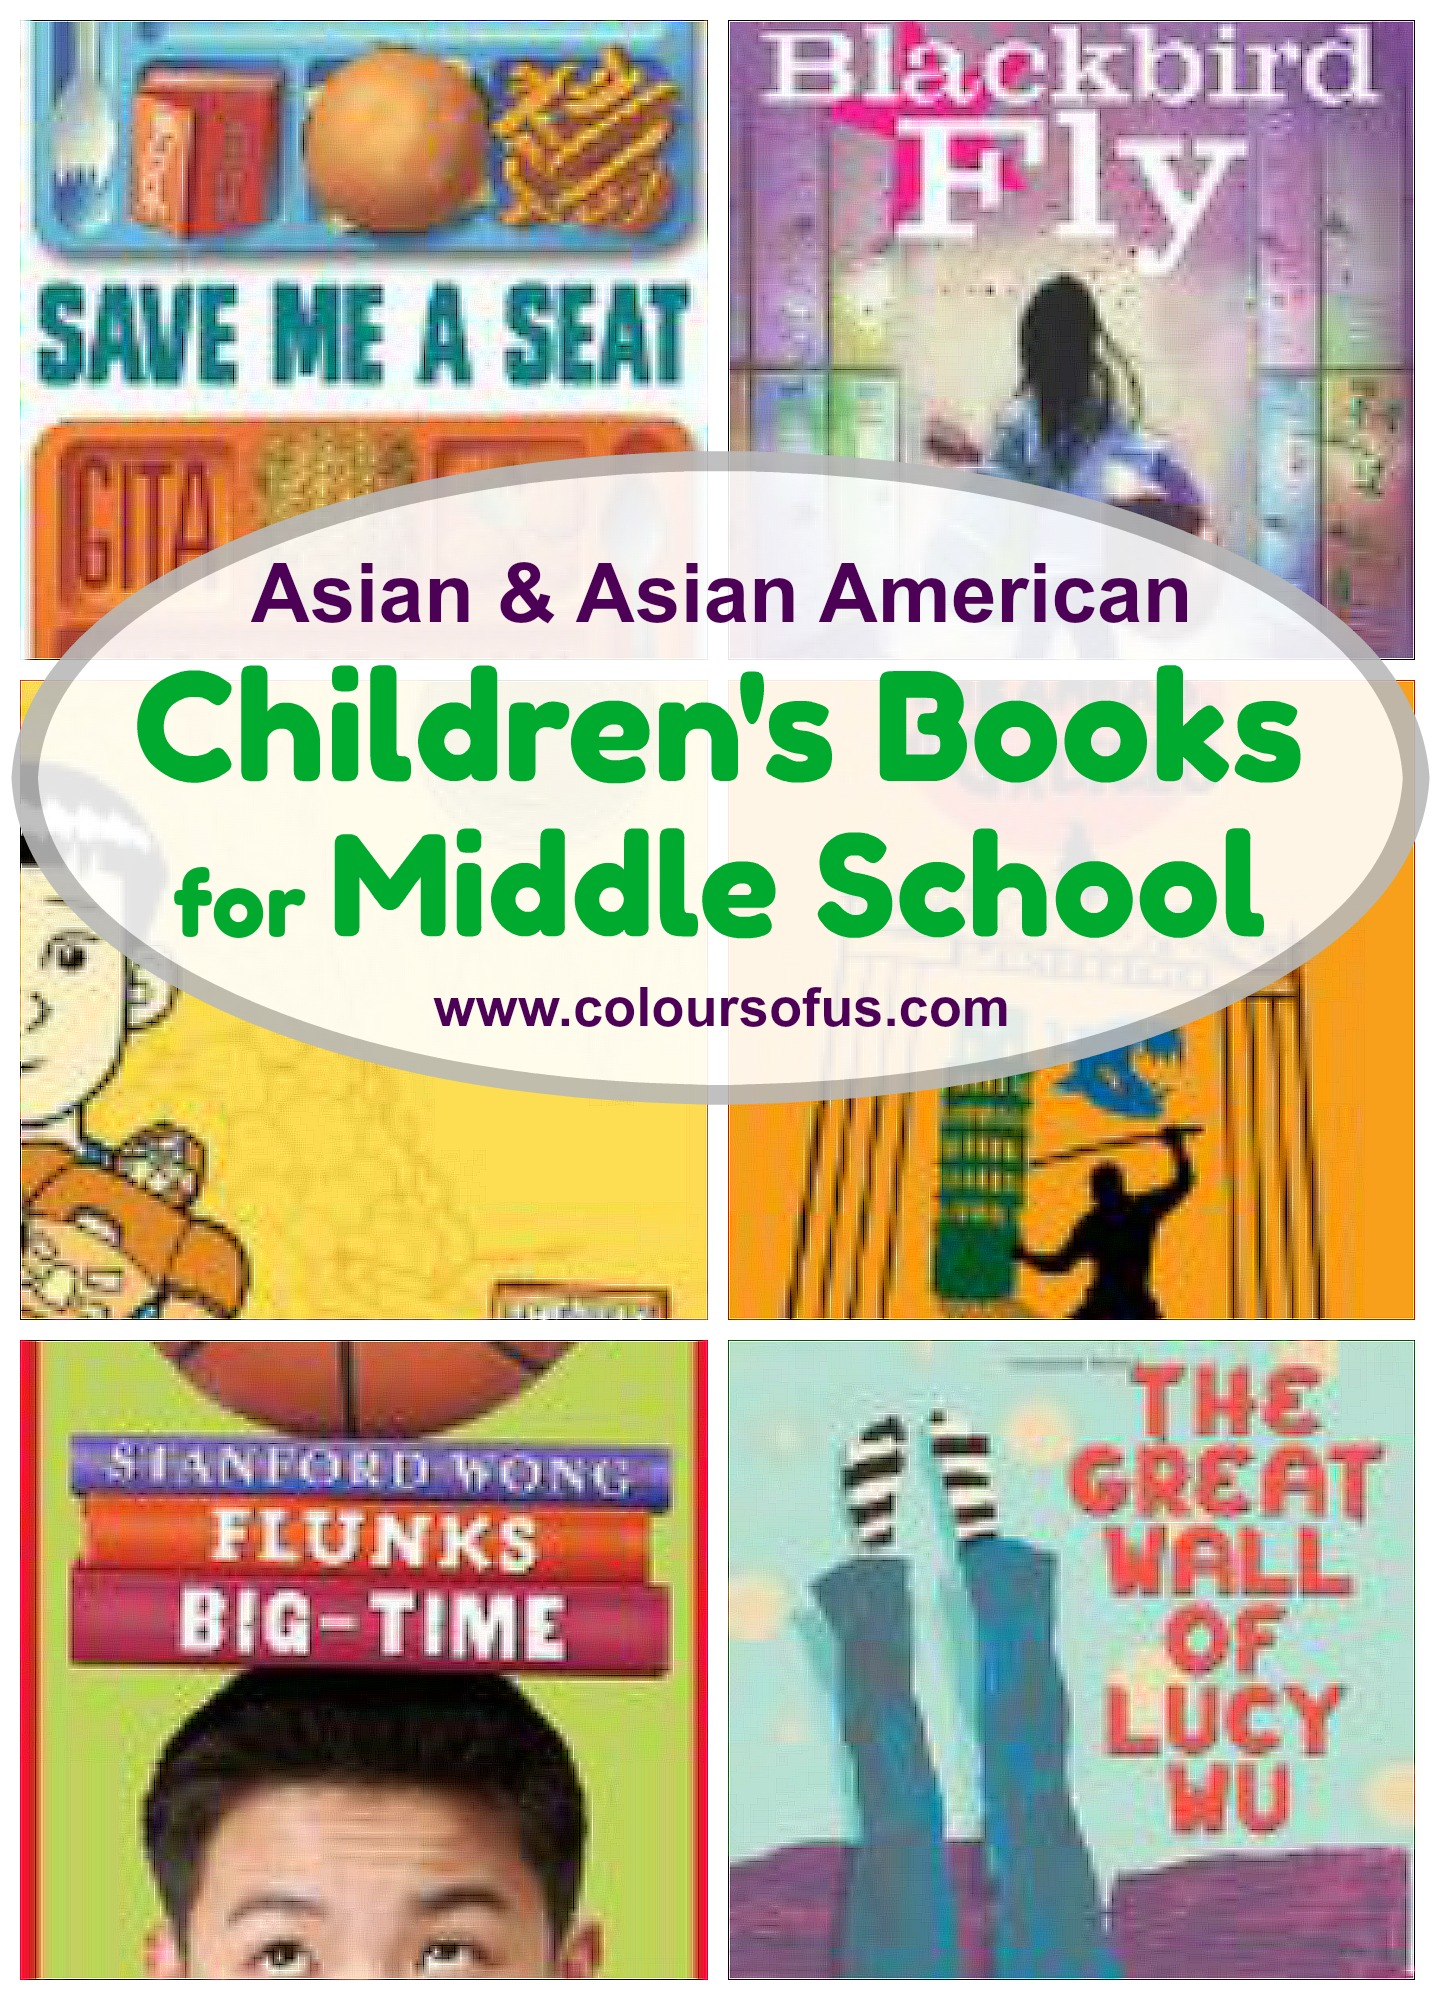 Japanese School Book Cover : Asian multicultural children s books middle school